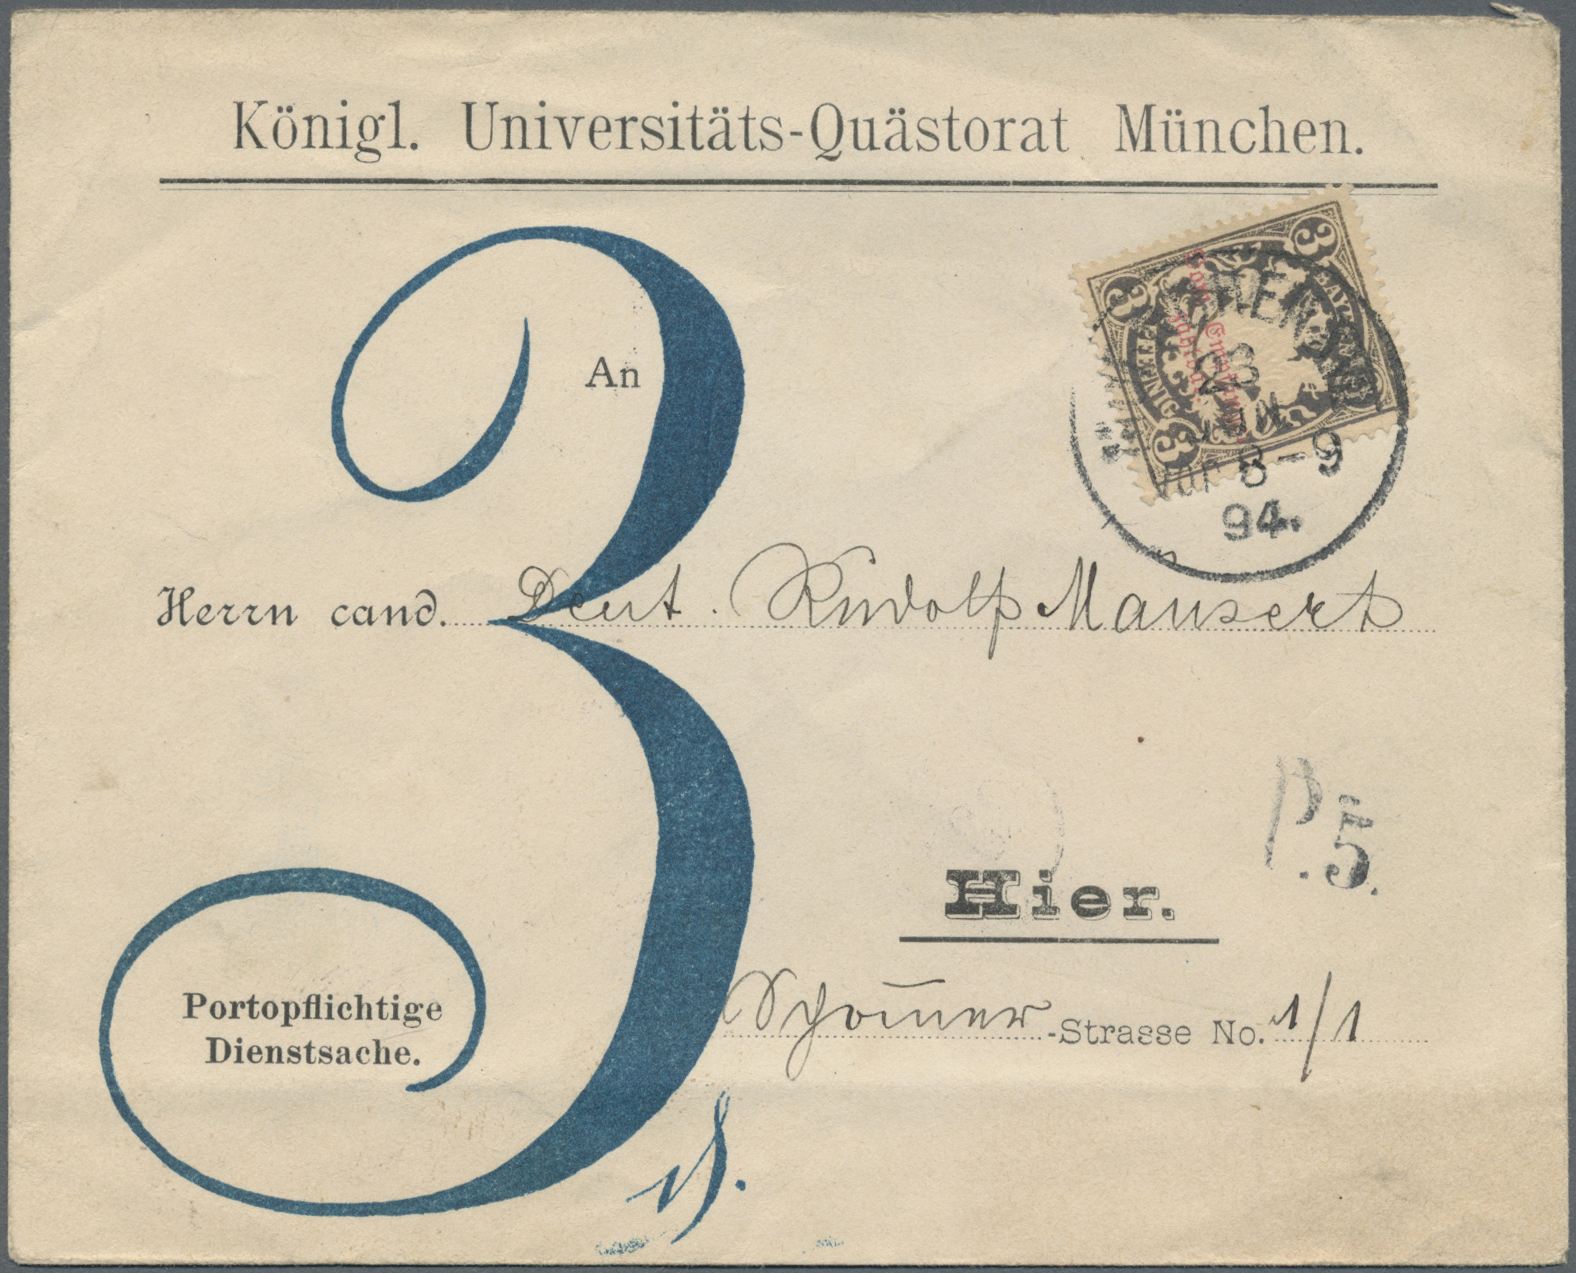 Lot 31217 - Bayern - Portomarken  -  Auktionshaus Christoph Gärtner GmbH & Co. KG Auction #40 Collections Germany, Wunderkartons